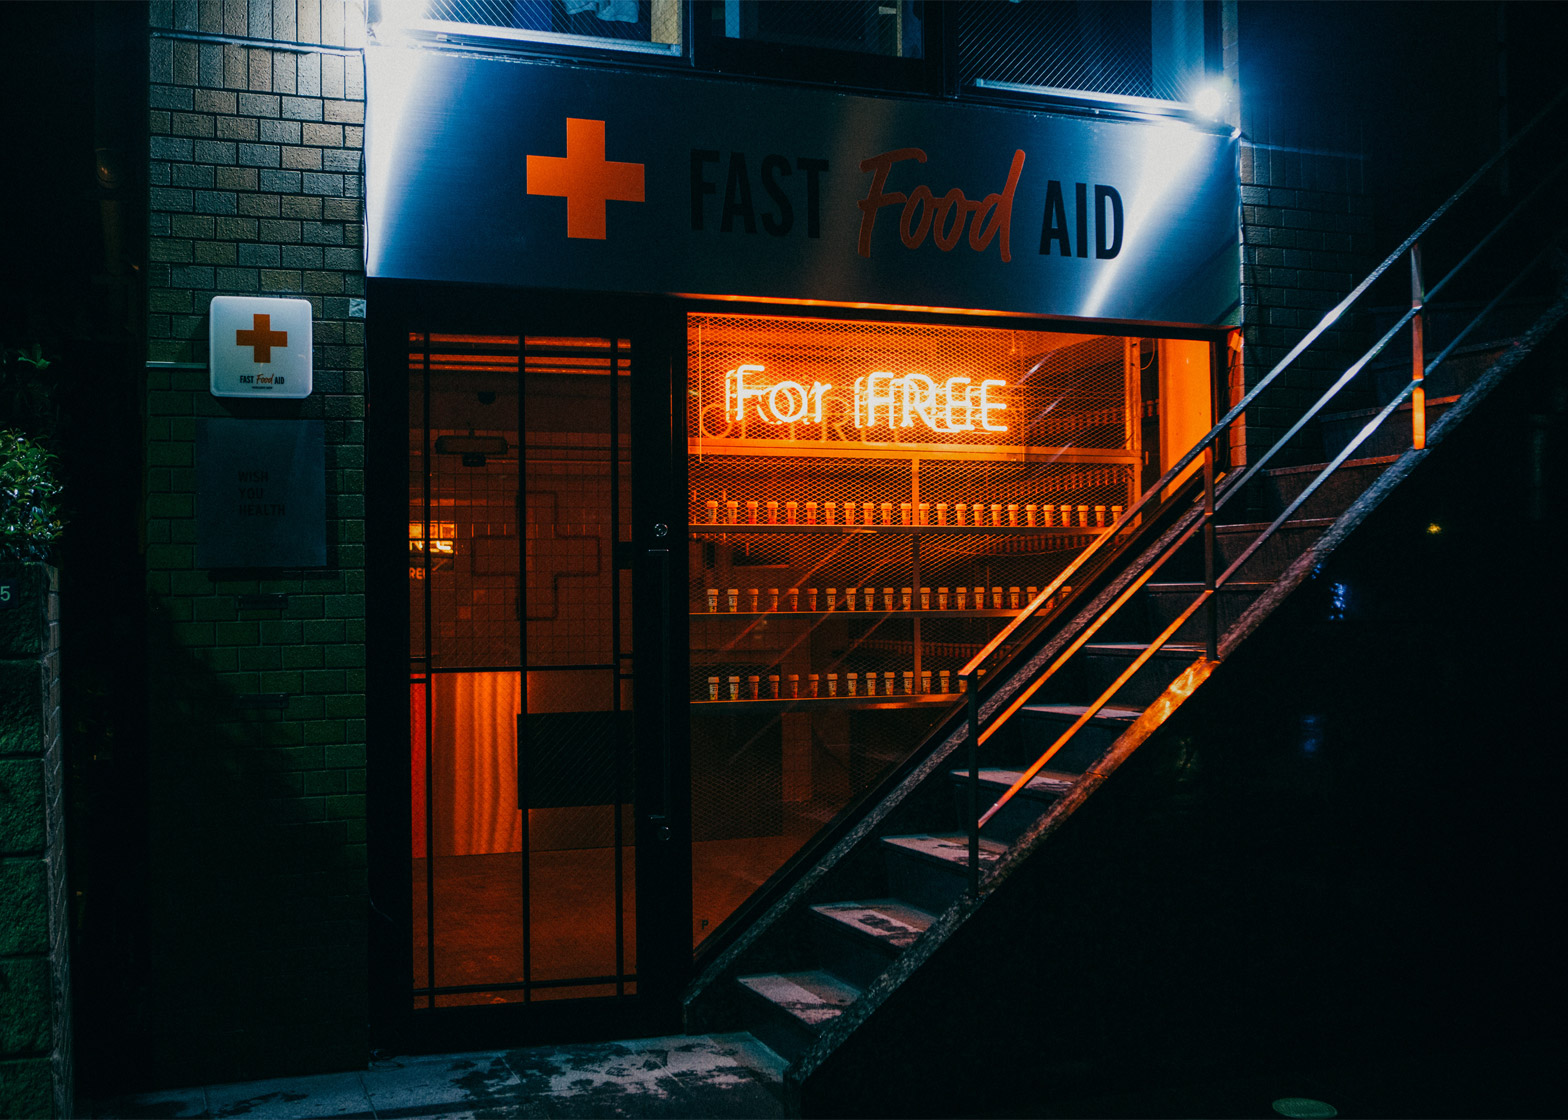 Fast Food Aid by BSPK